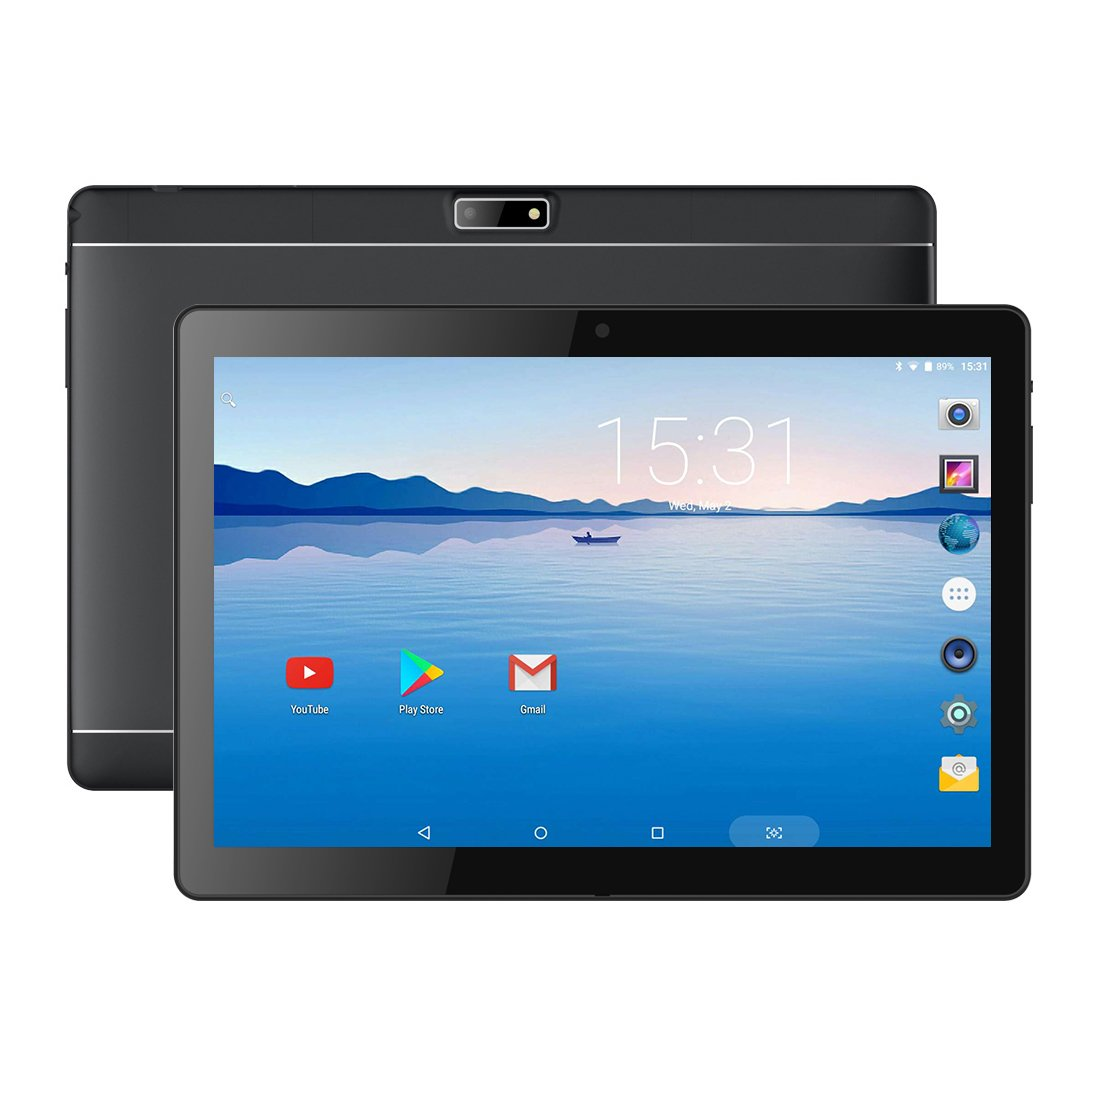 BENEVE 10.1'' Inch Android Tablet 6.0 Quad CORE/GPS Fast CPU, 2GB RAM + 16GB ROM, 1.3GHz CPU, Dual Camera, Front 2MP+Rear 5MP,WiFi, Bluetooth, HD IPS Screen, Google Play, Dual Band 5.0G WiFi by BENEVE